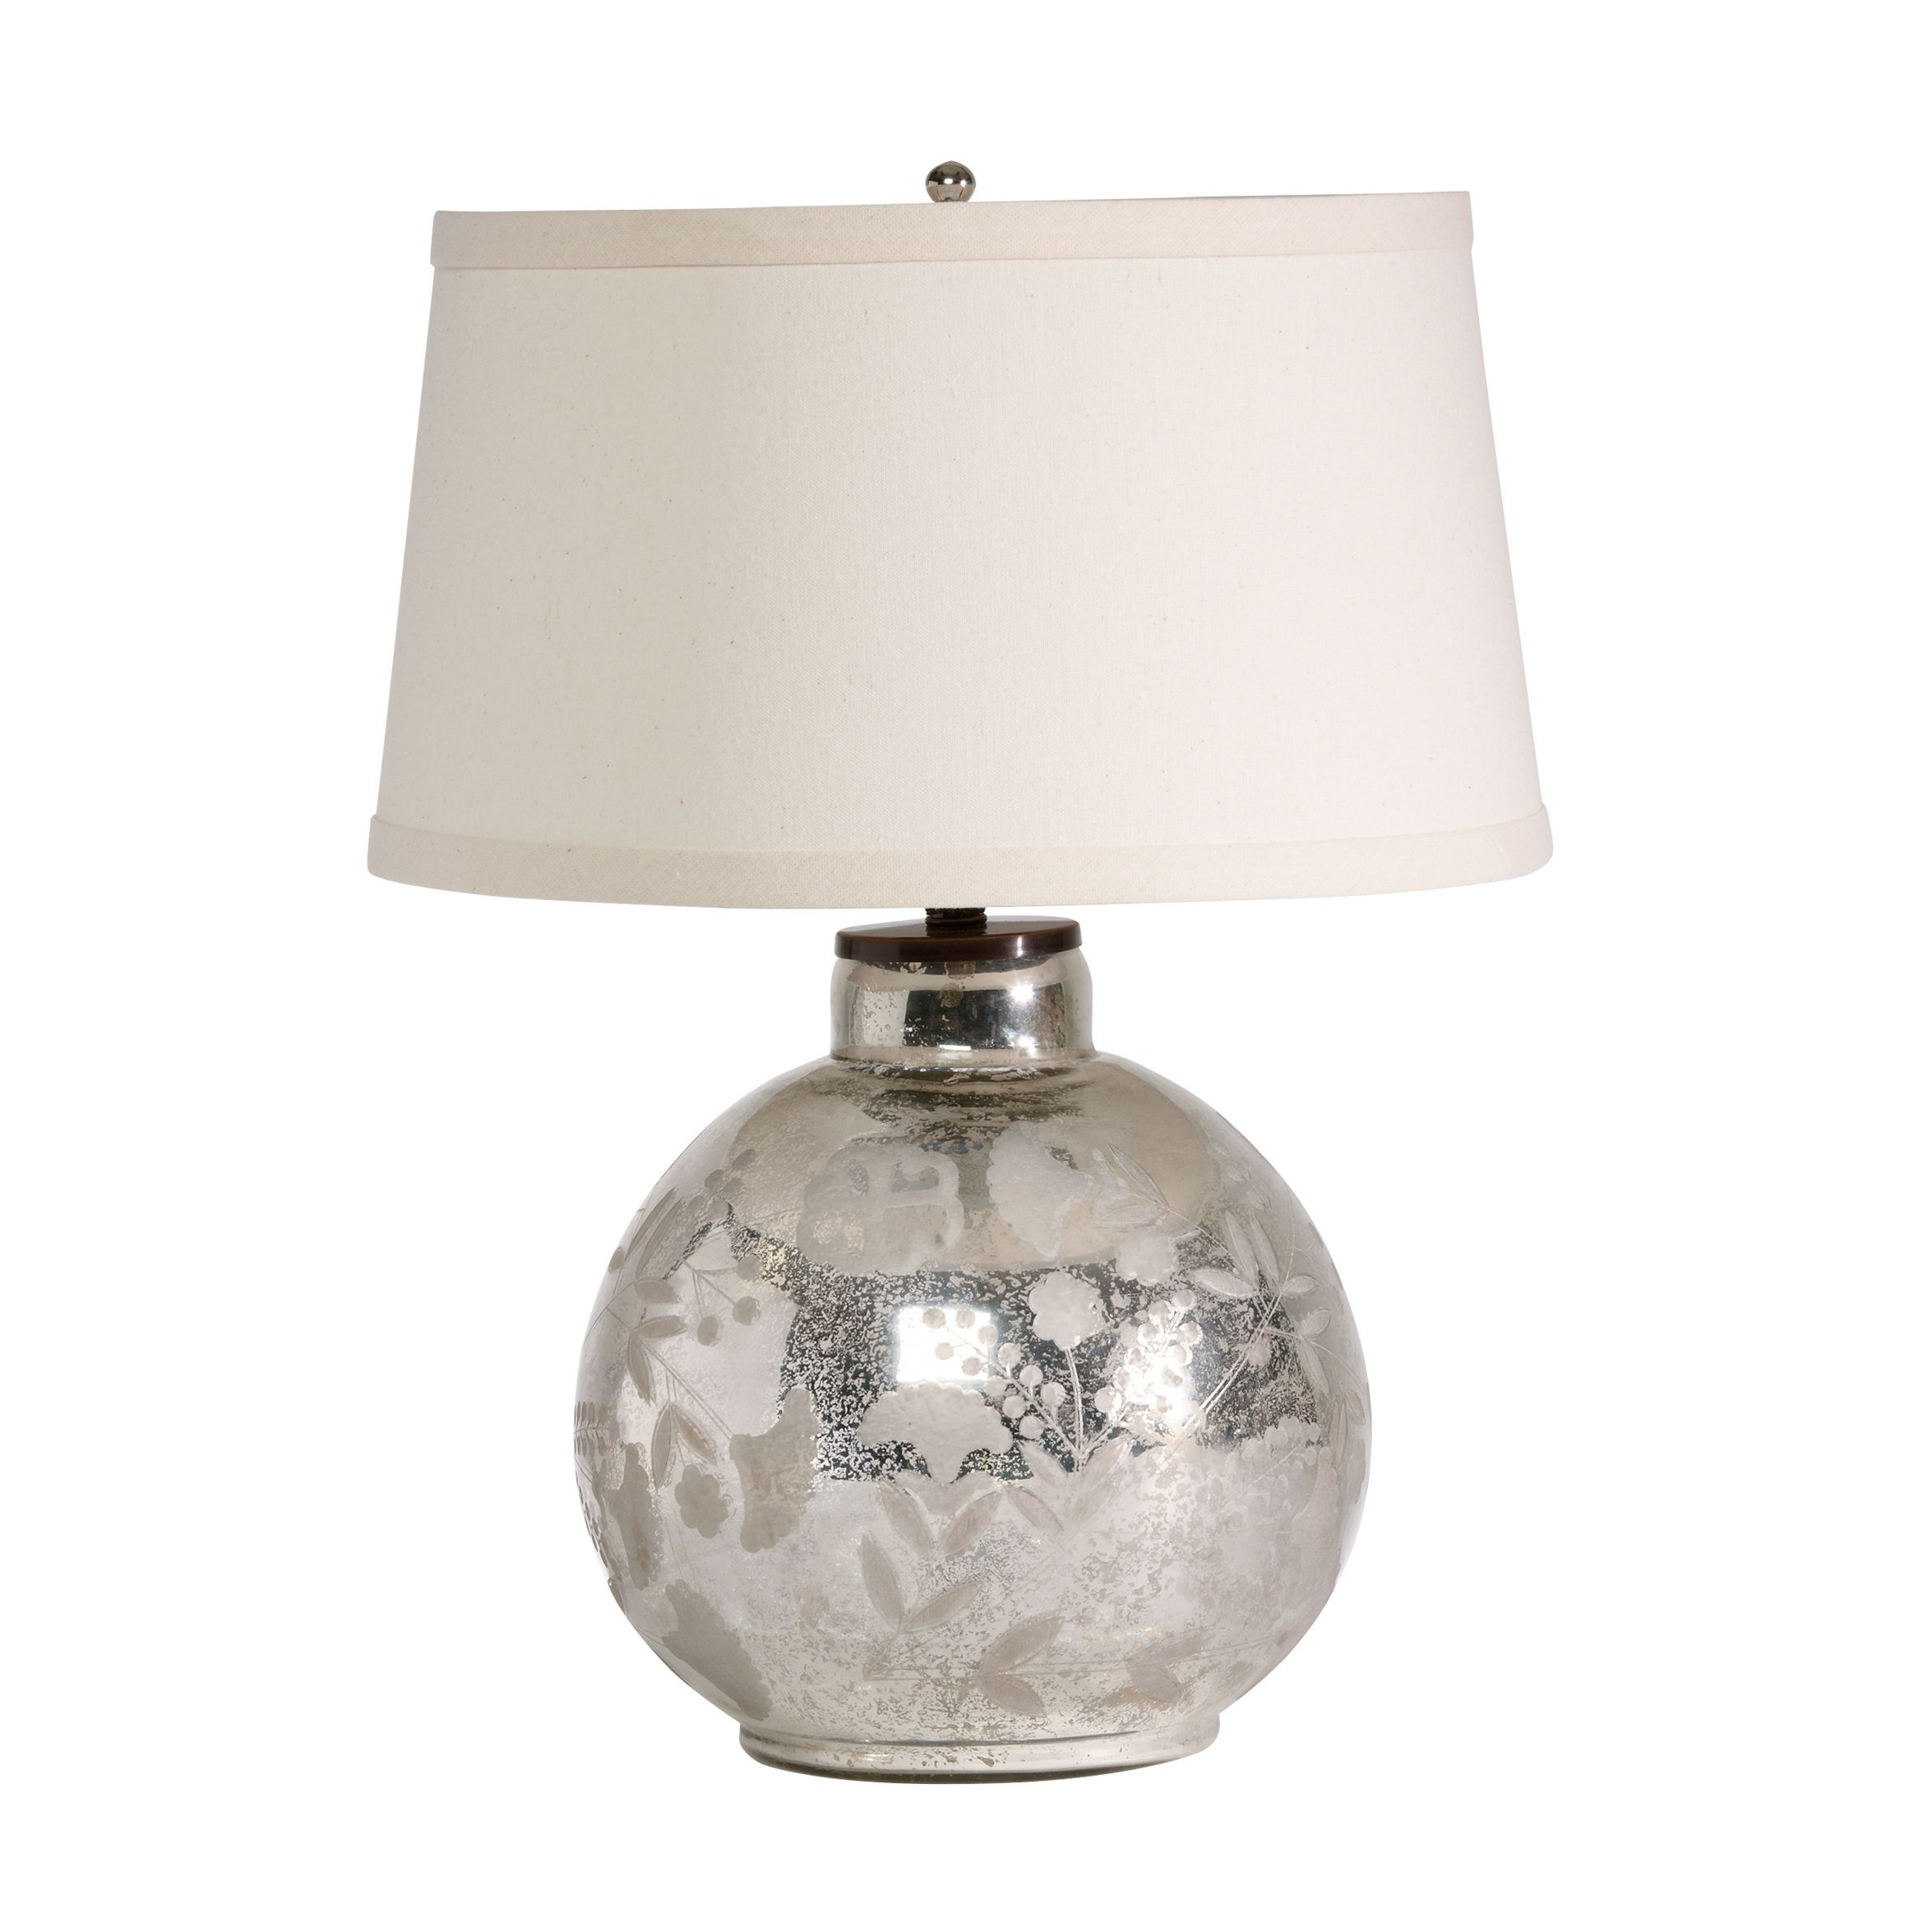 Small Stellar Ball Table Lamp   Ethan Allen US